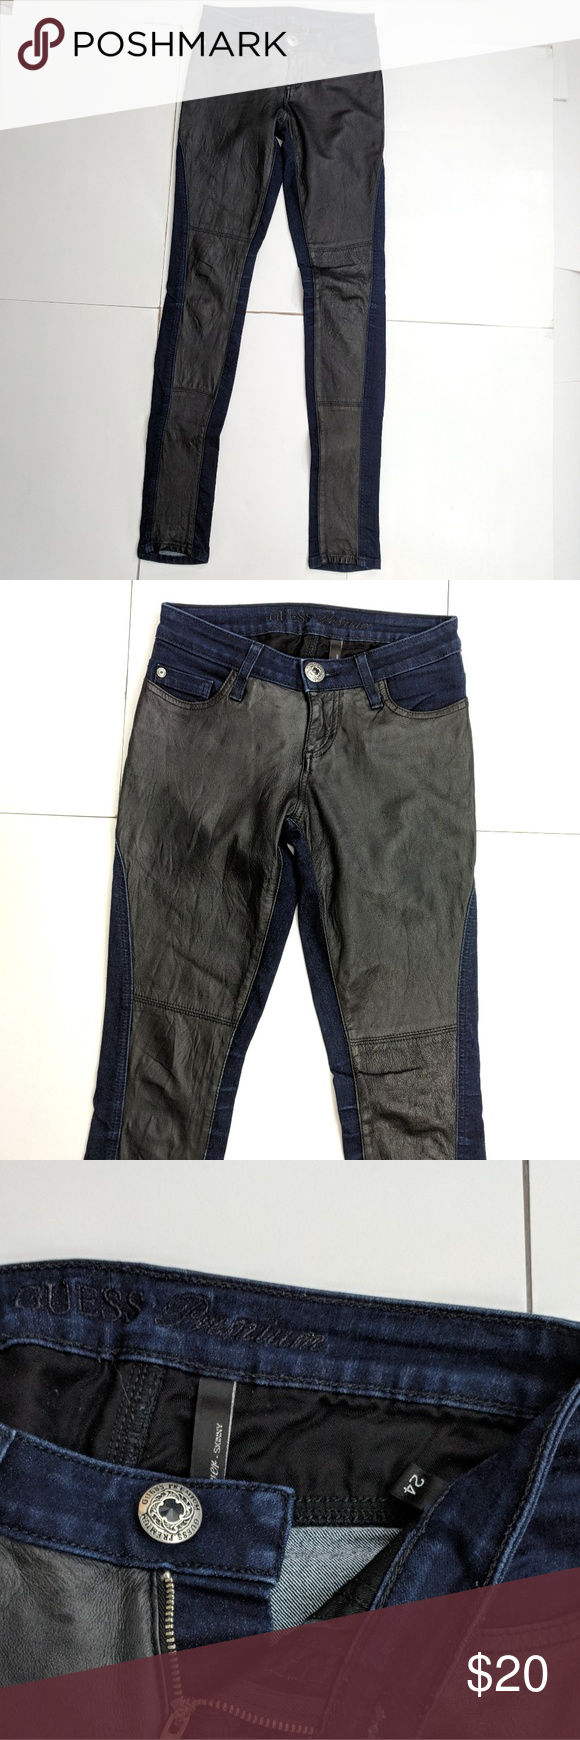 Guess Premium Power Skinny Stretch Jeans Black 24 Guess